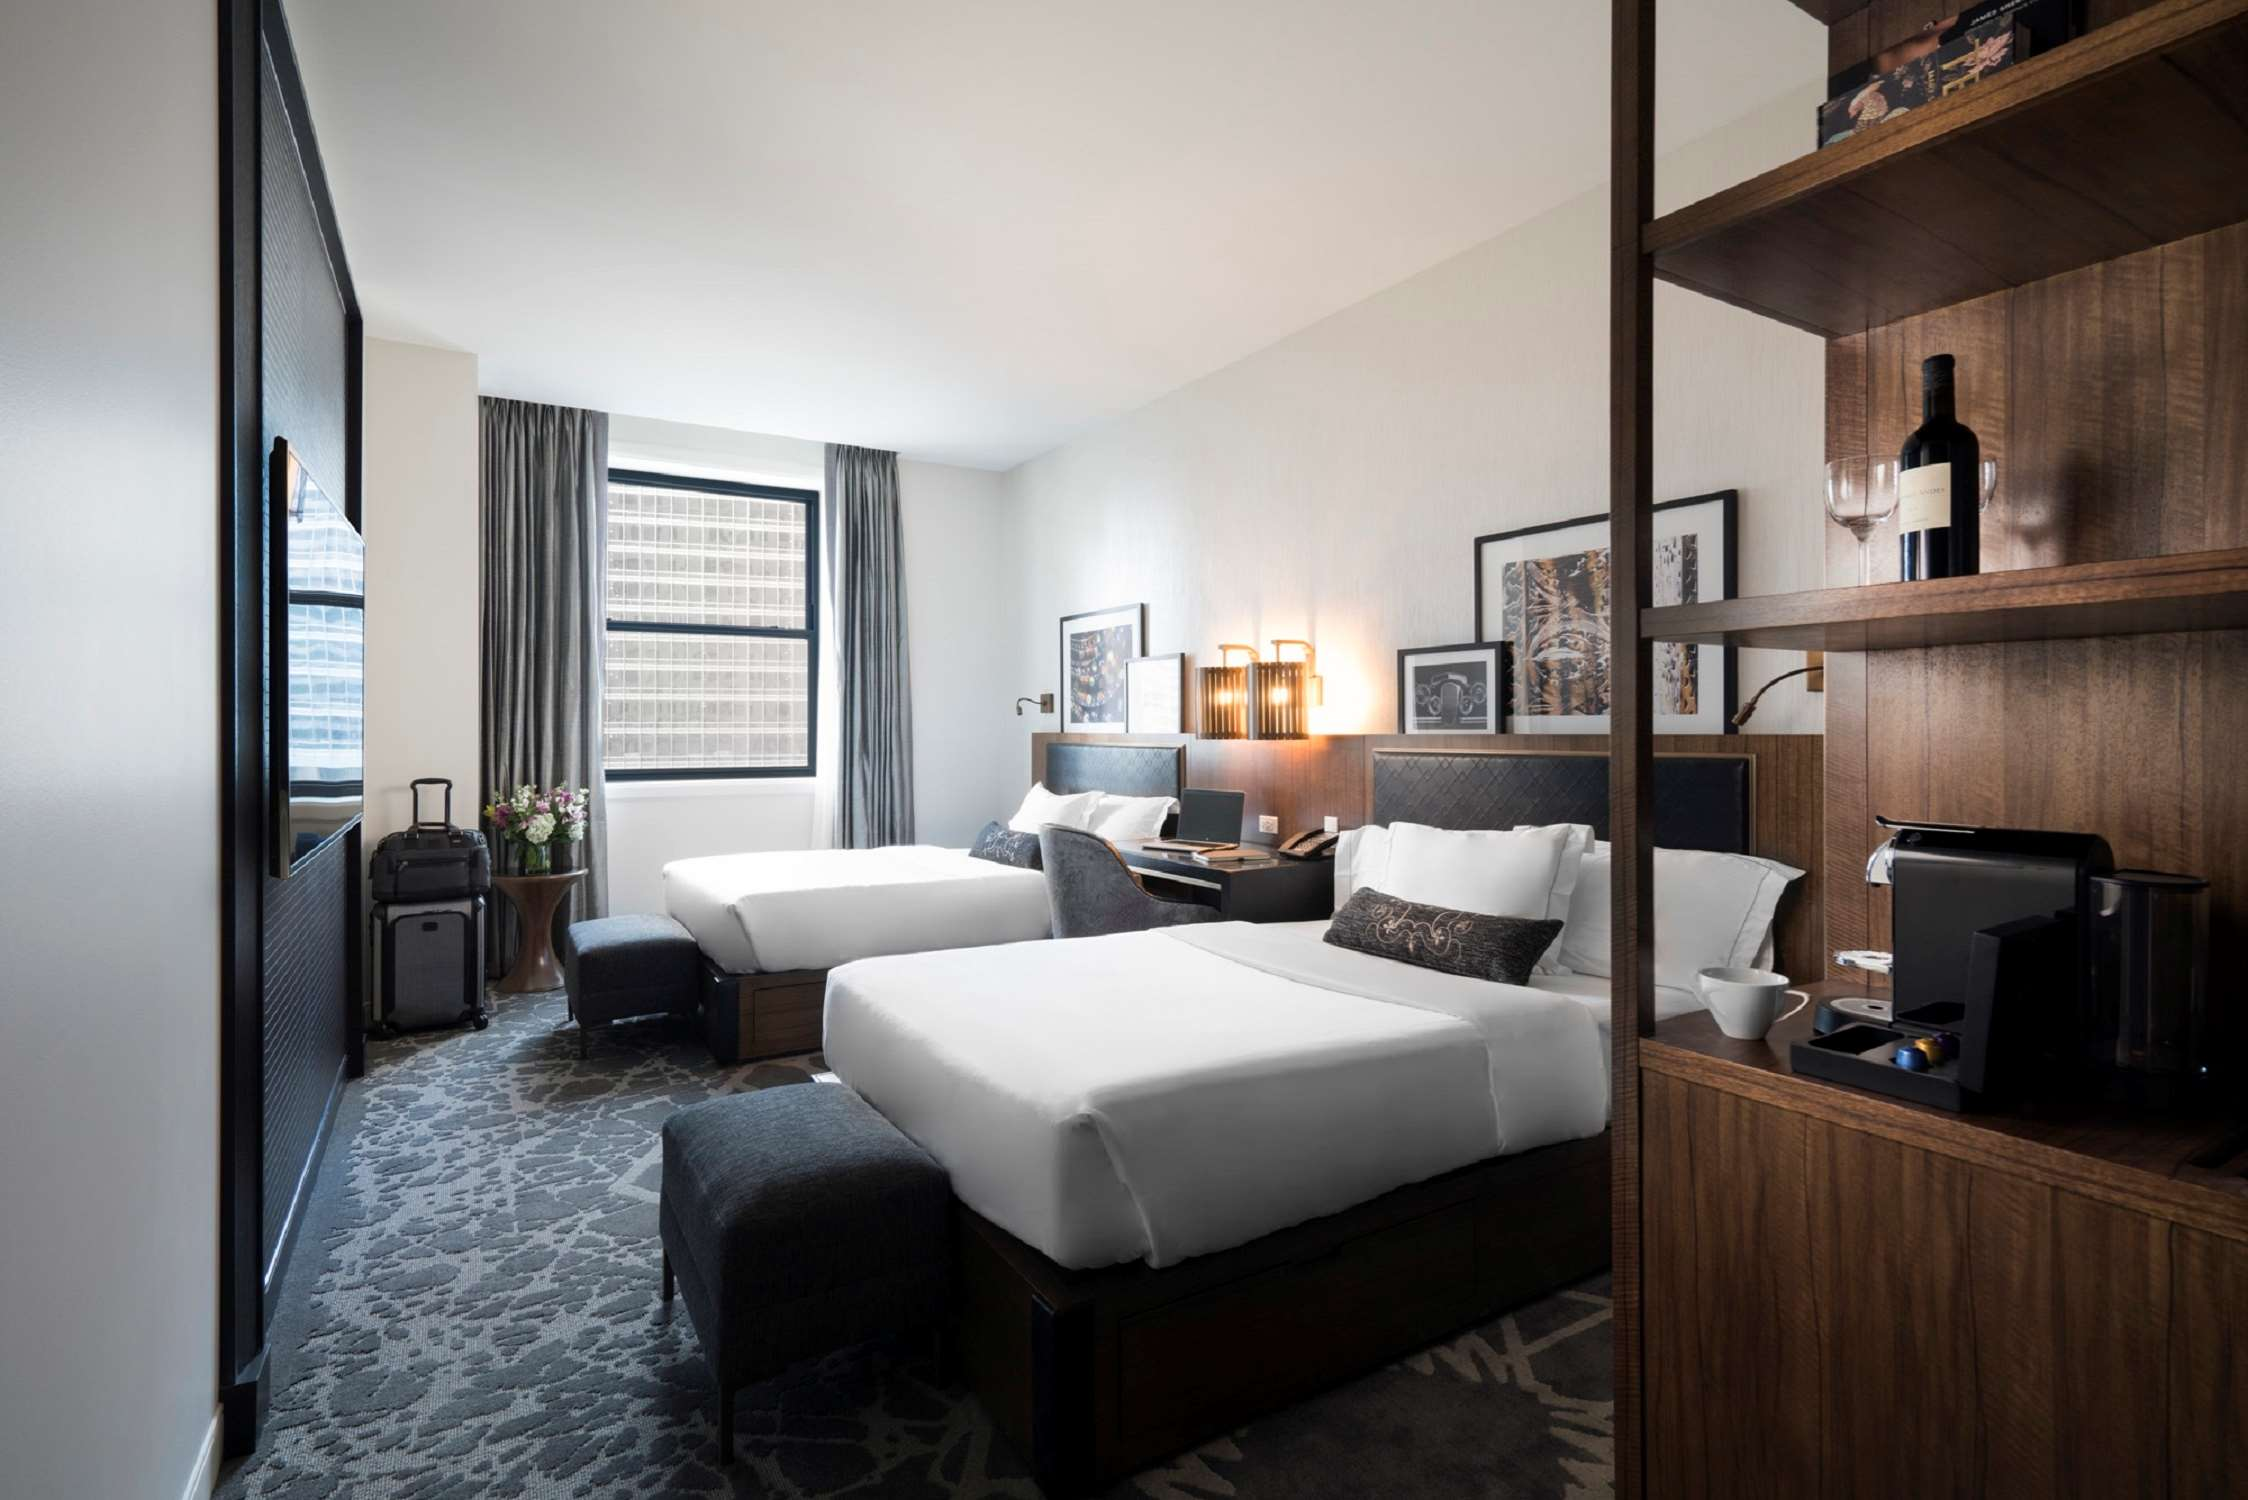 LondonHouse Chicago, Curio Collection by Hilton image 24